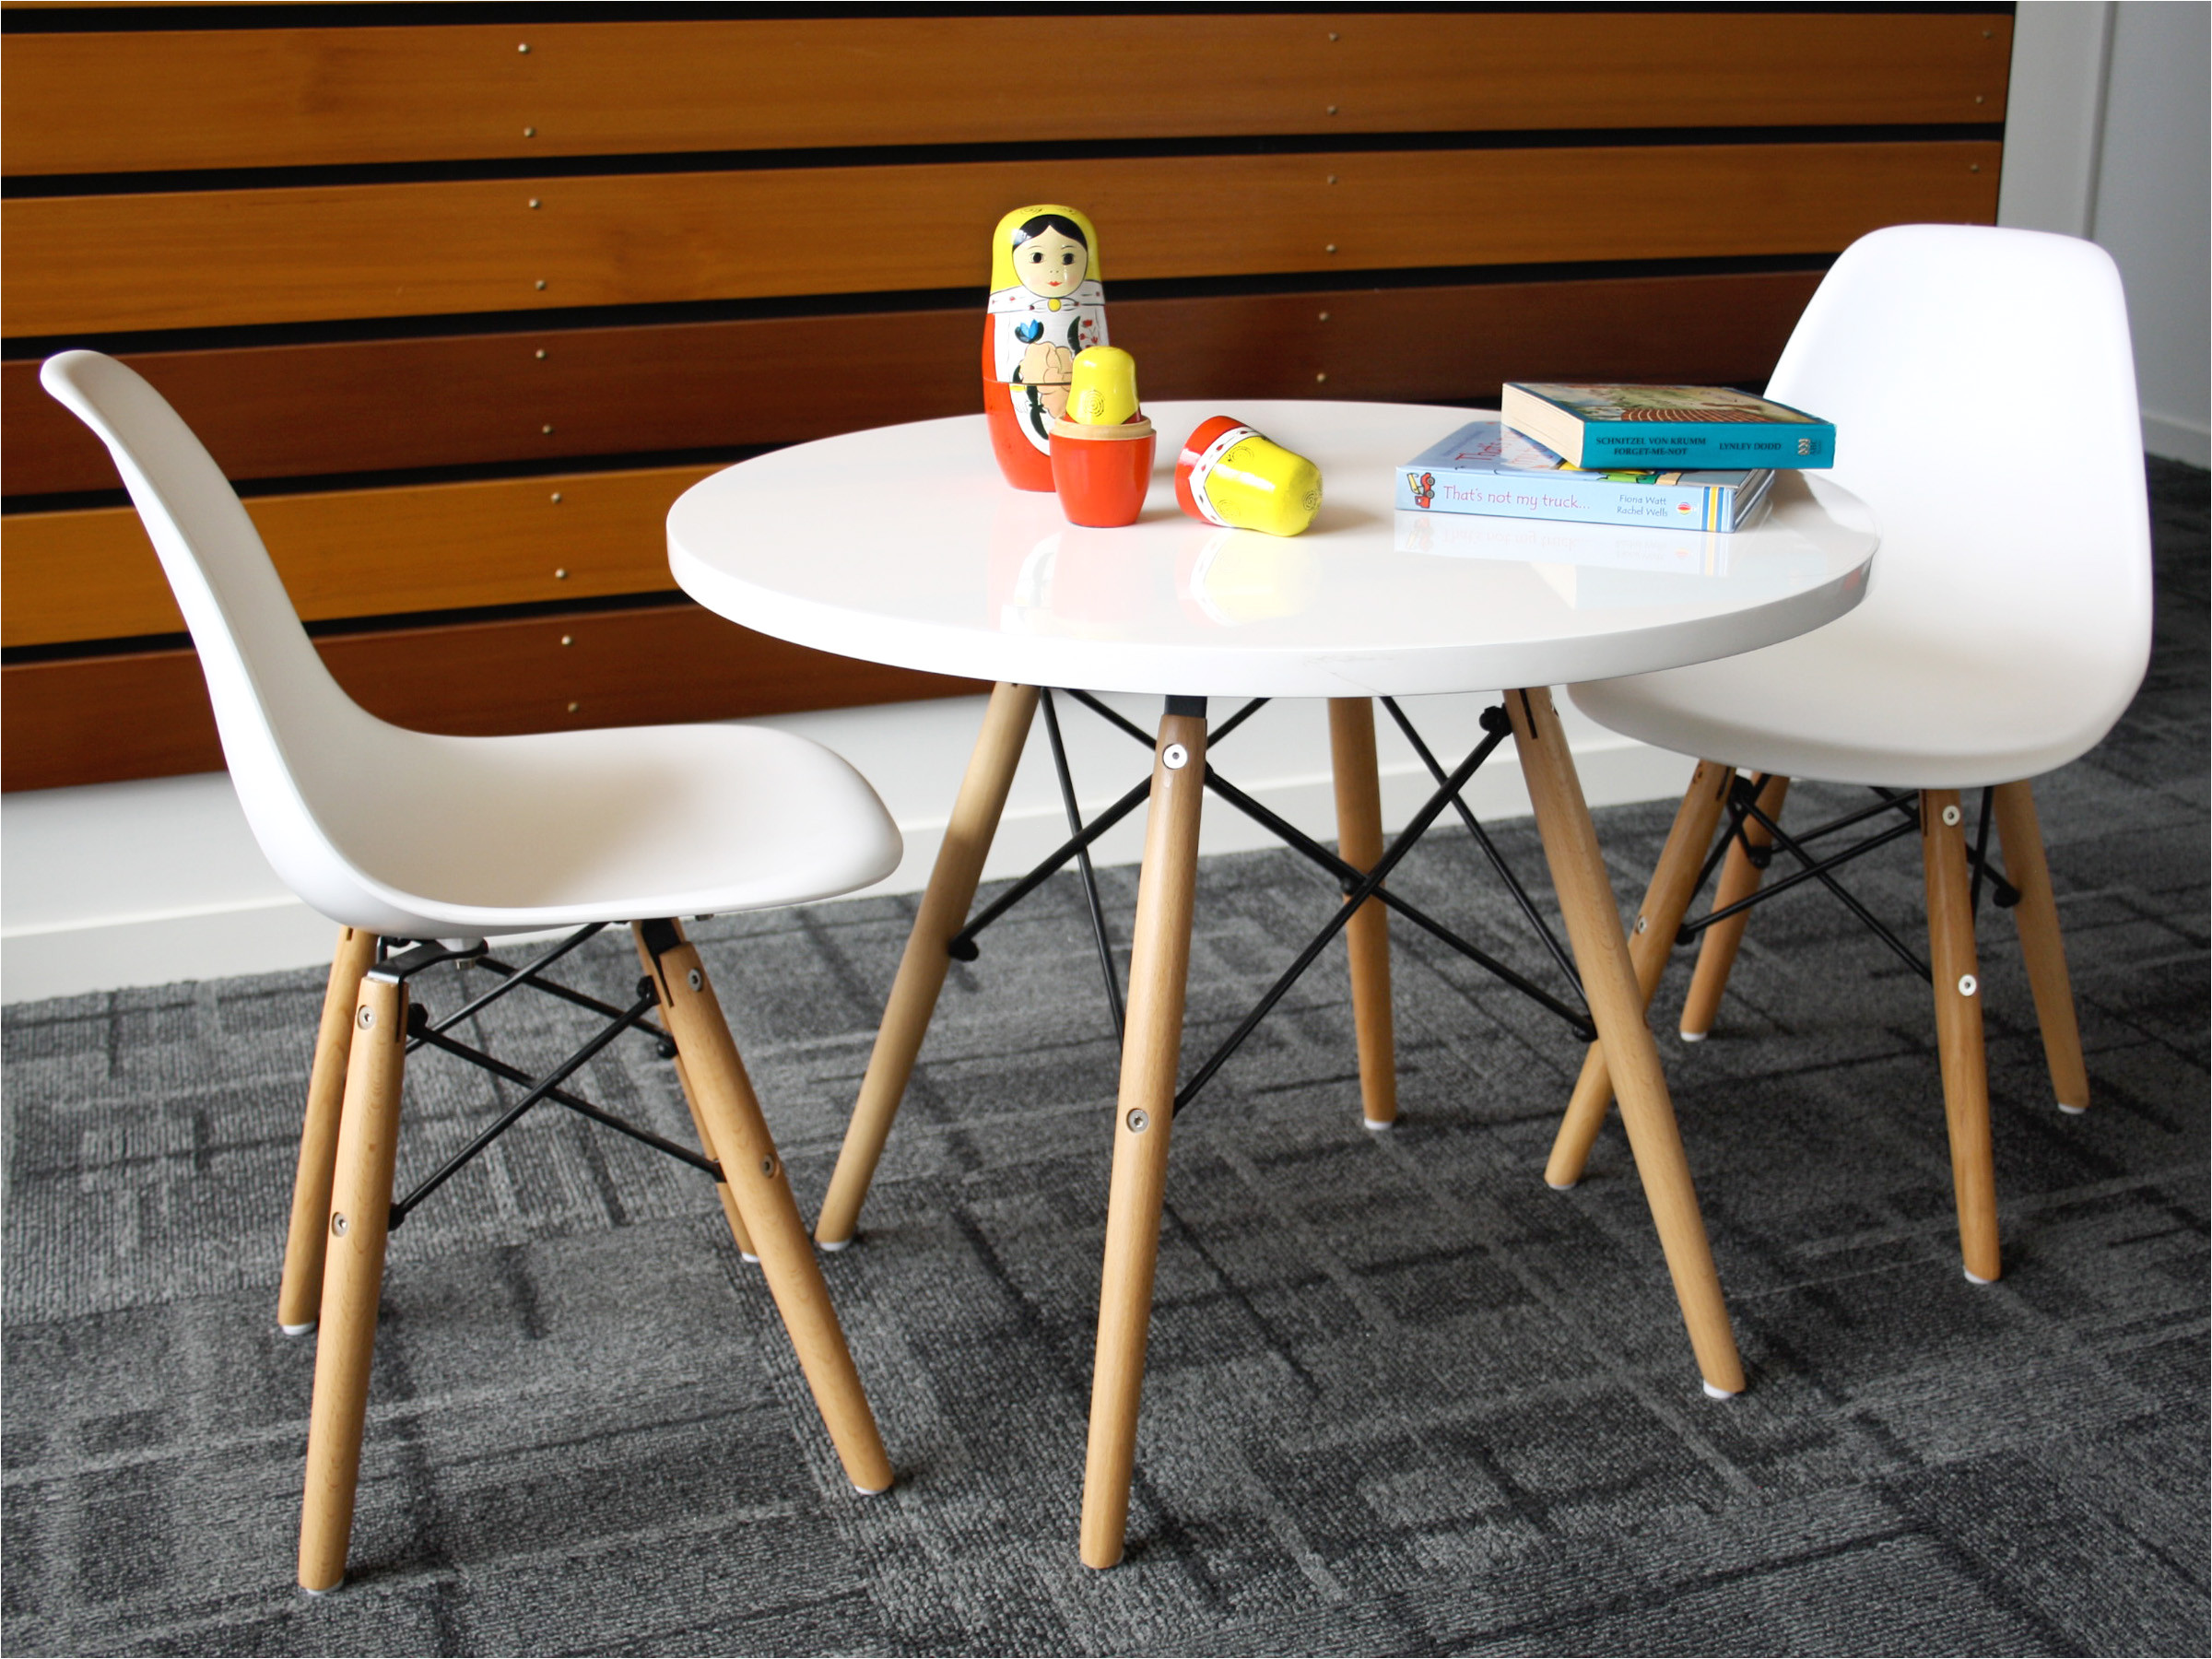 mocka belle table and chairs 8 jpg